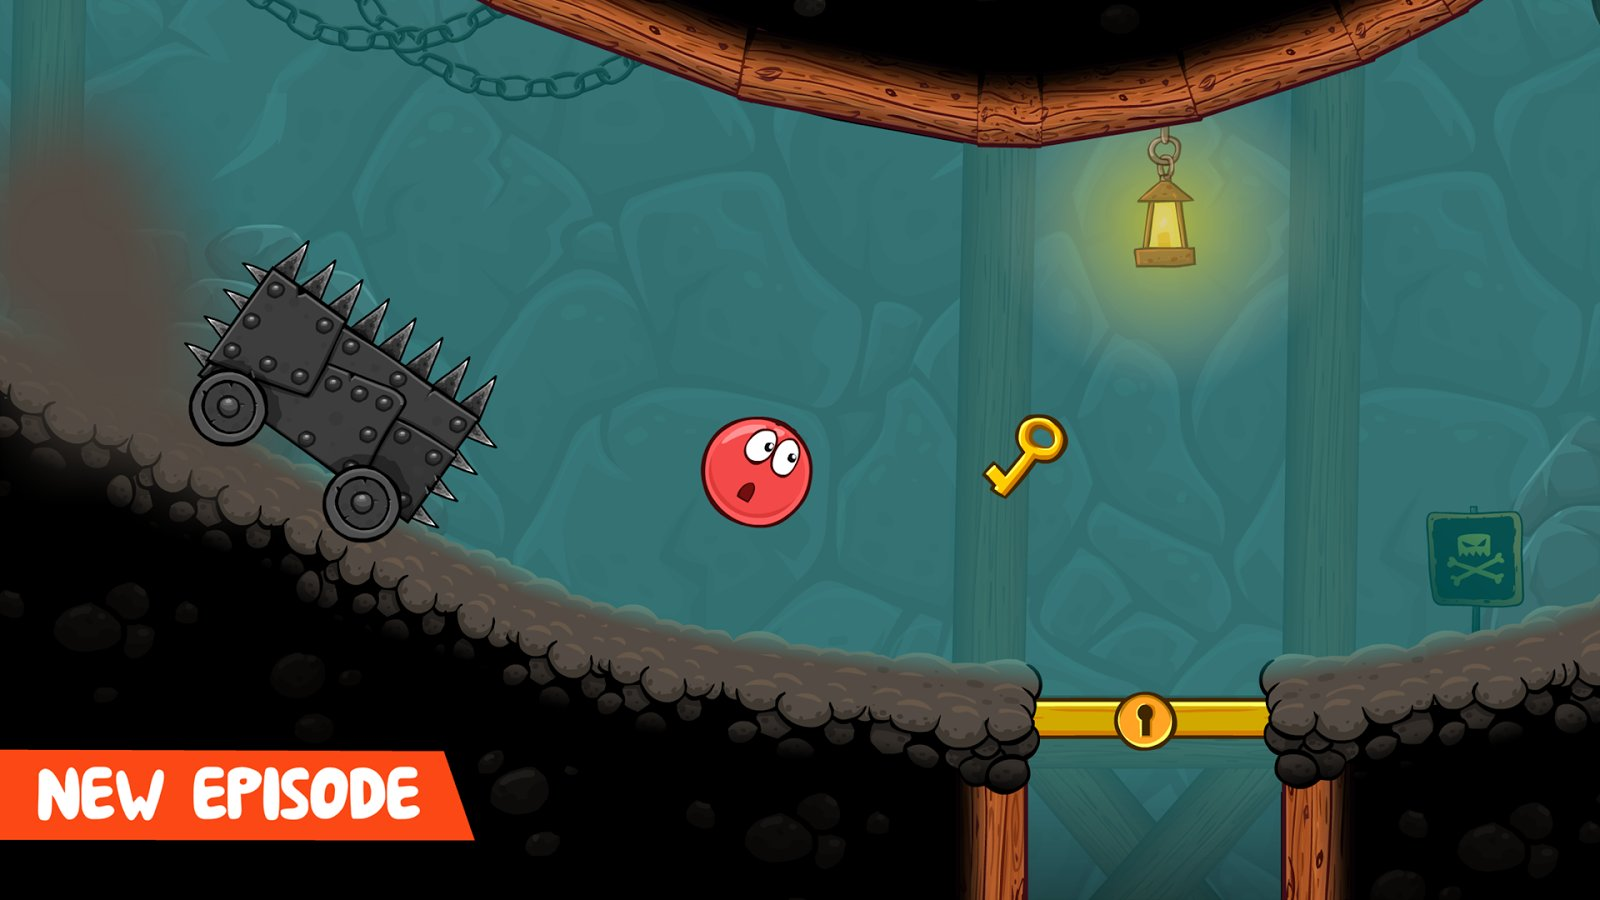 Skachat-red-ball-4-na-android - …